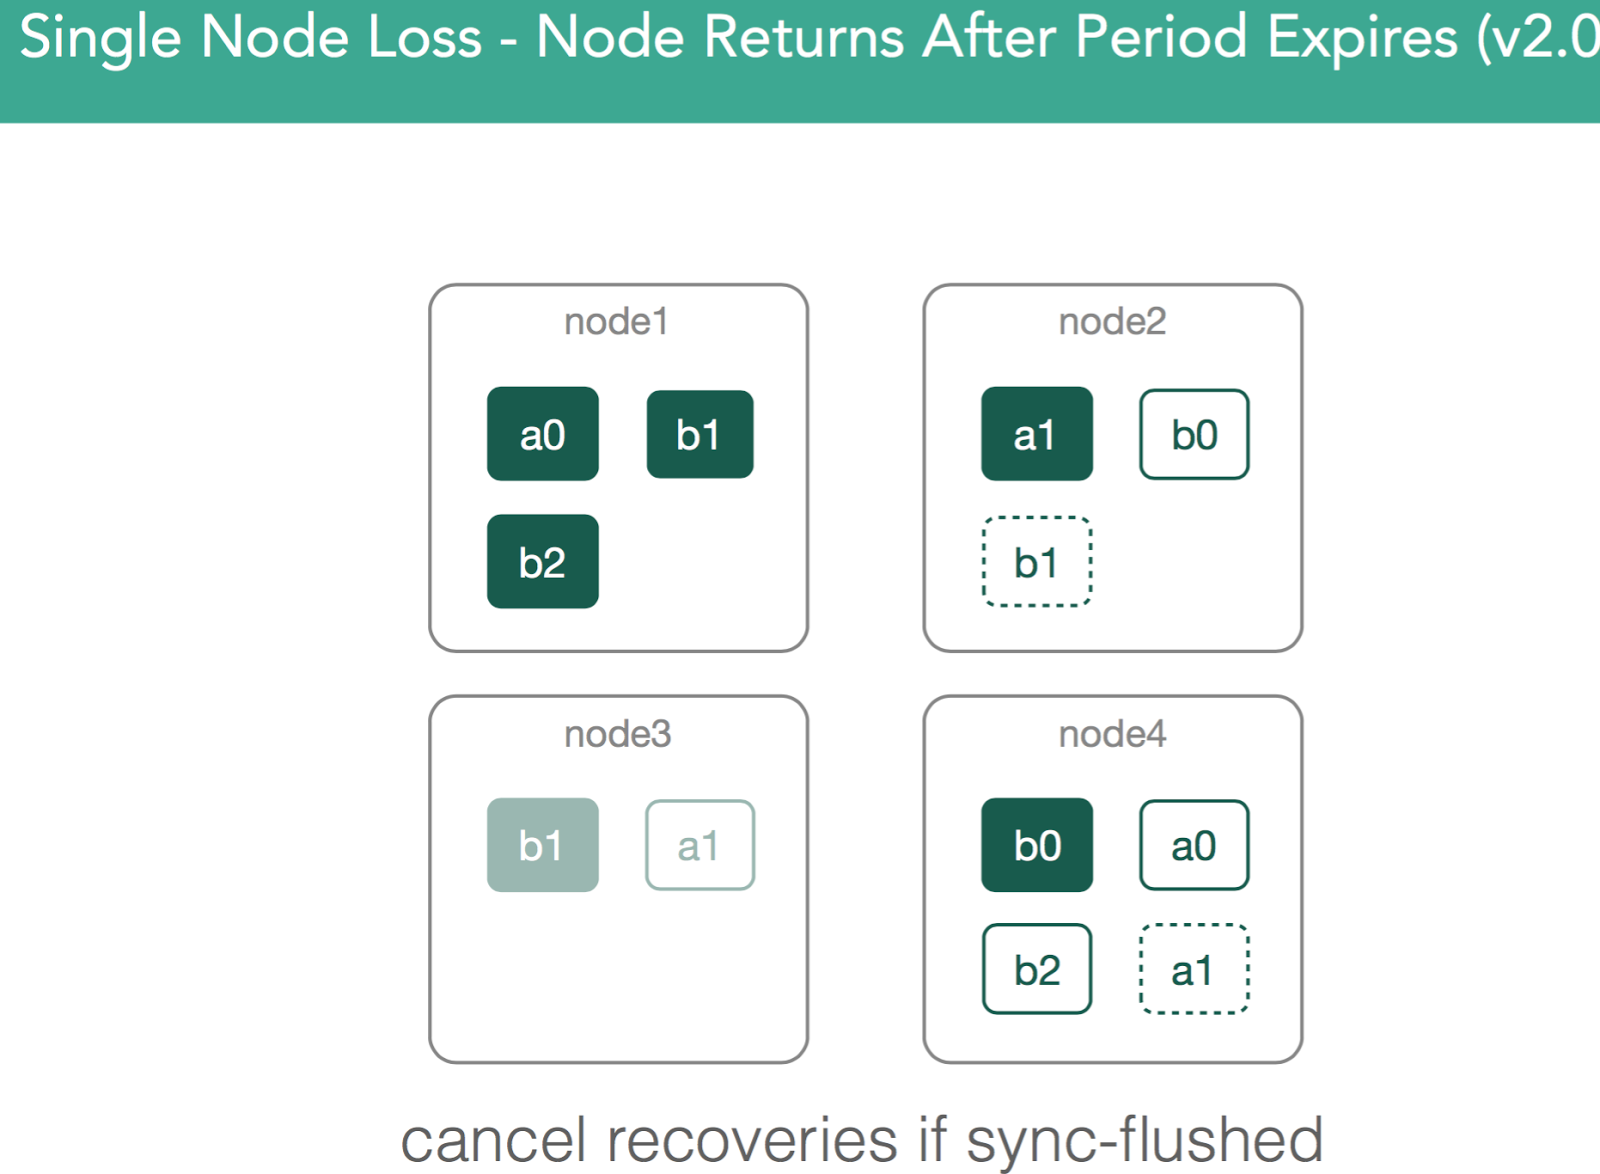 Single Node Loss - Node Returns After Period Expires (v2.0)